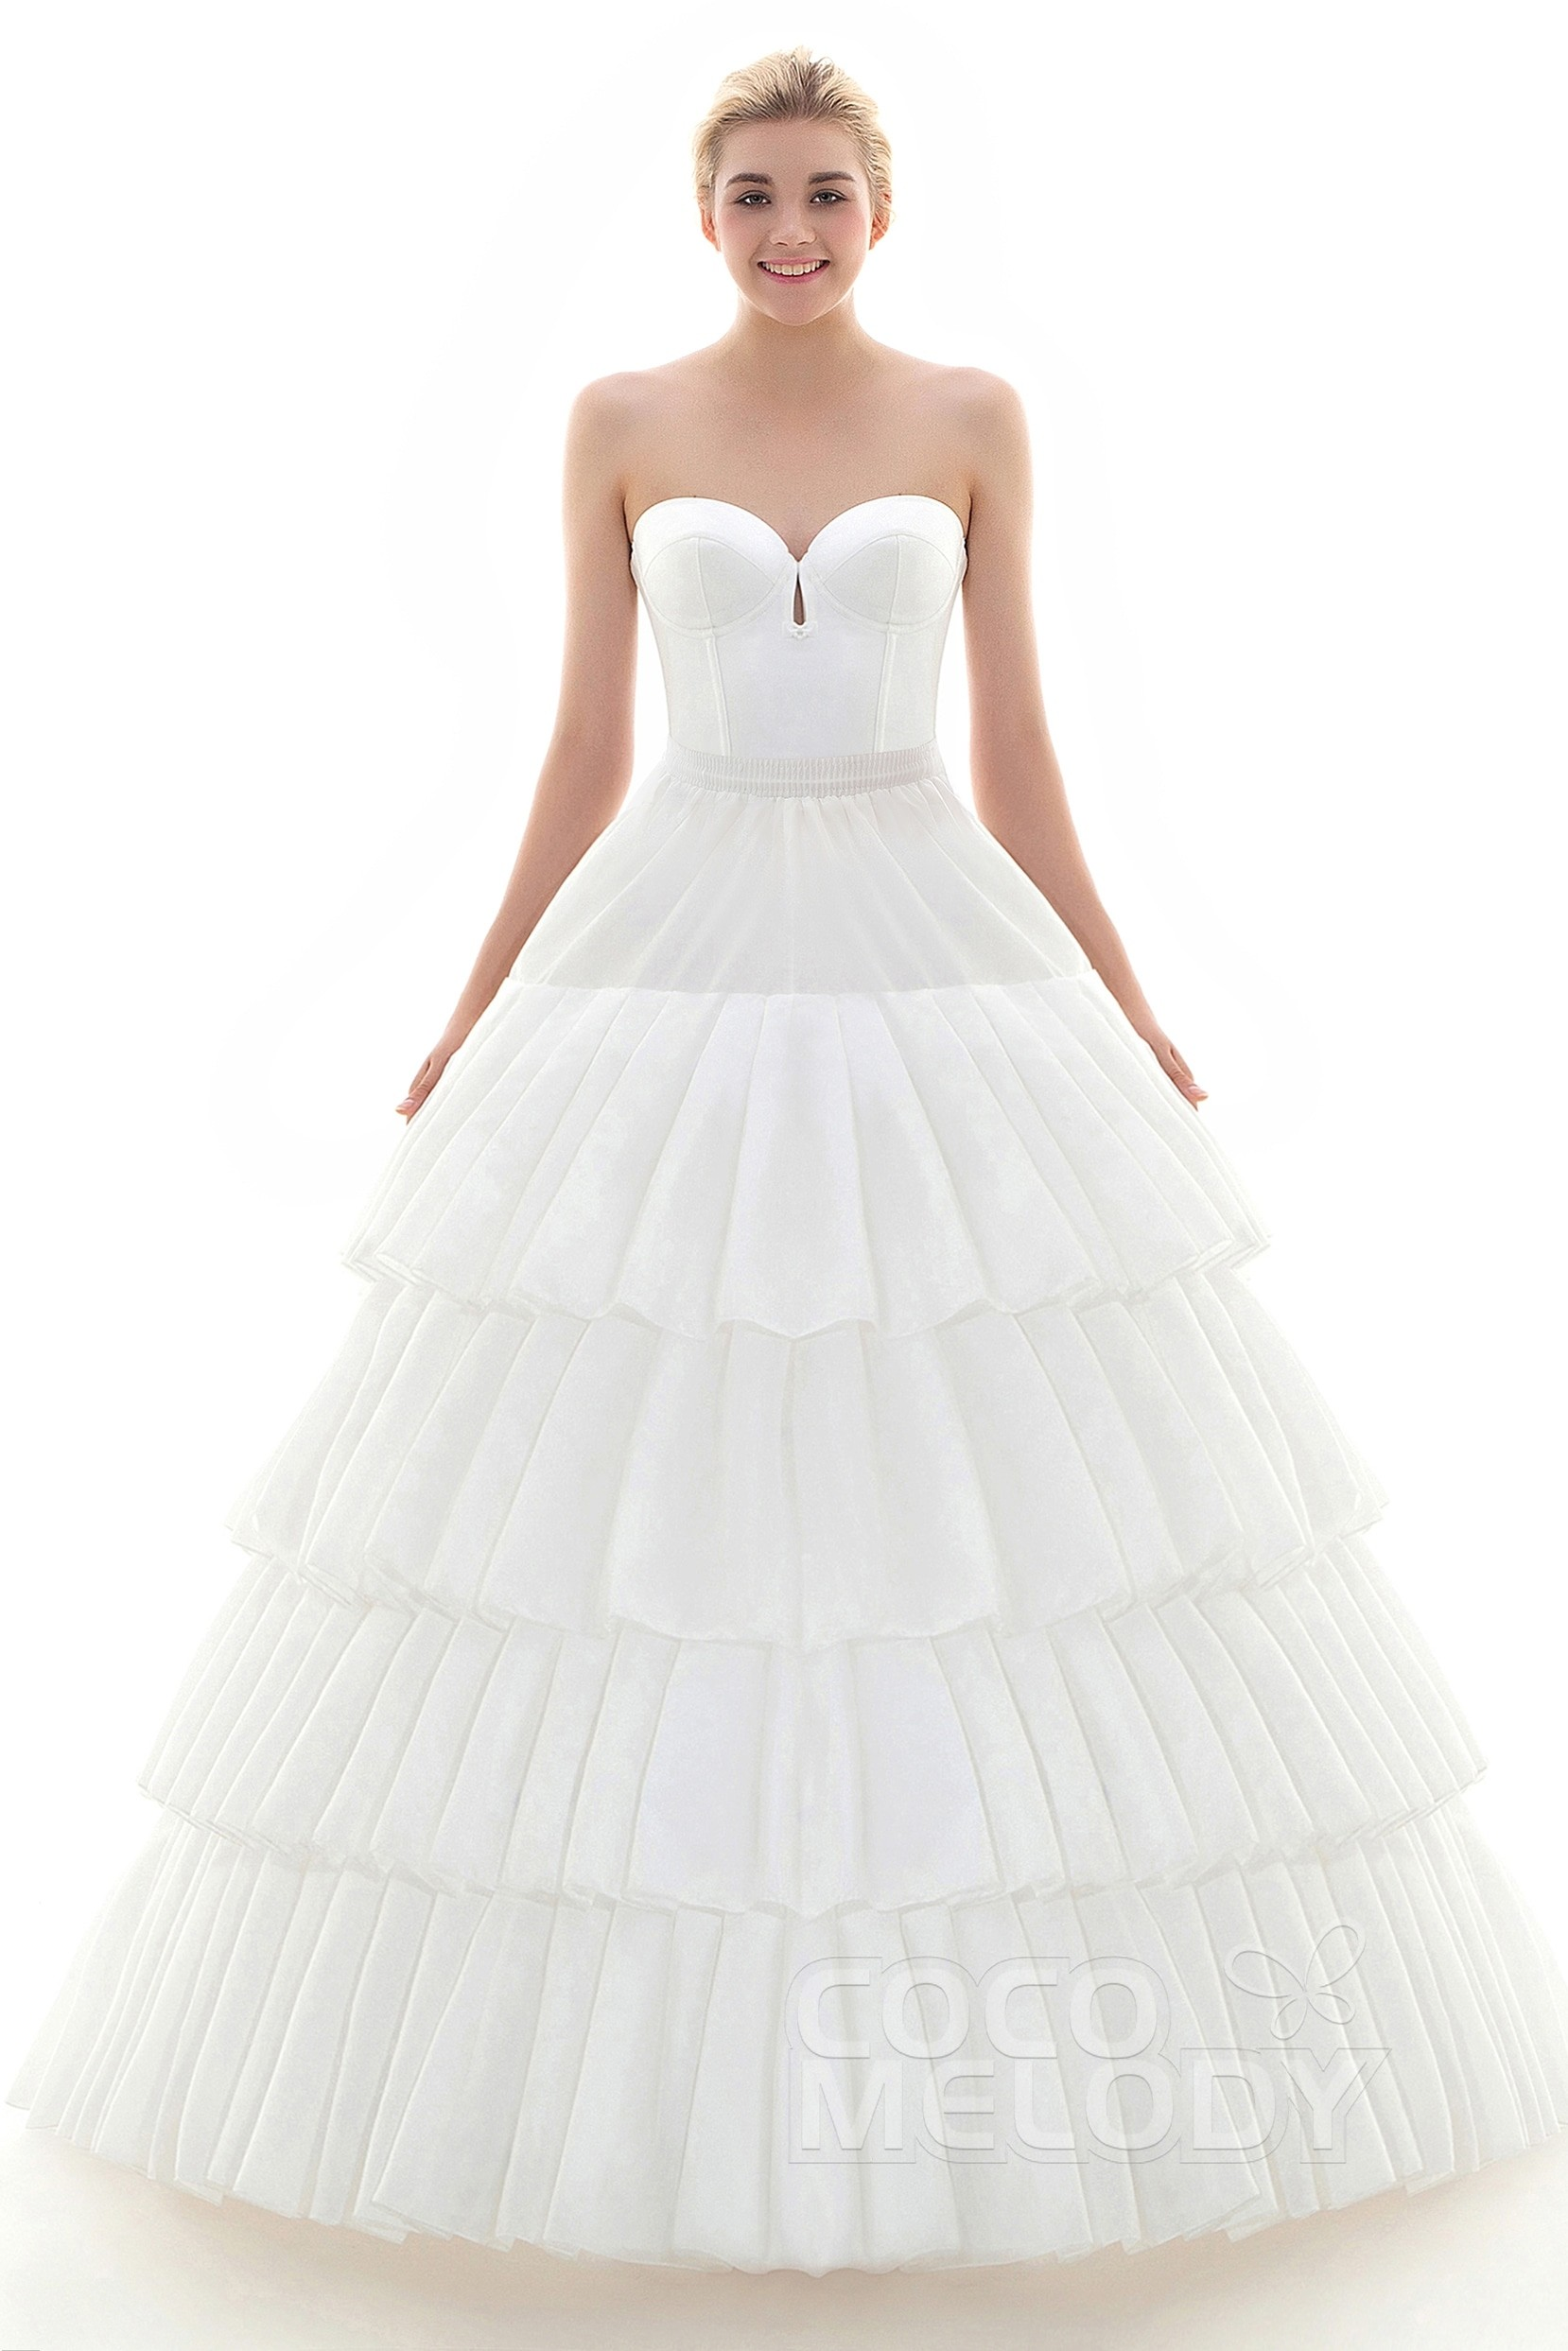 6c7879668e37 Ball Gown Court Train Medium Fullness Slip 4 Hoops Polyester Taffeta Wedding  Petticoats CP0016005